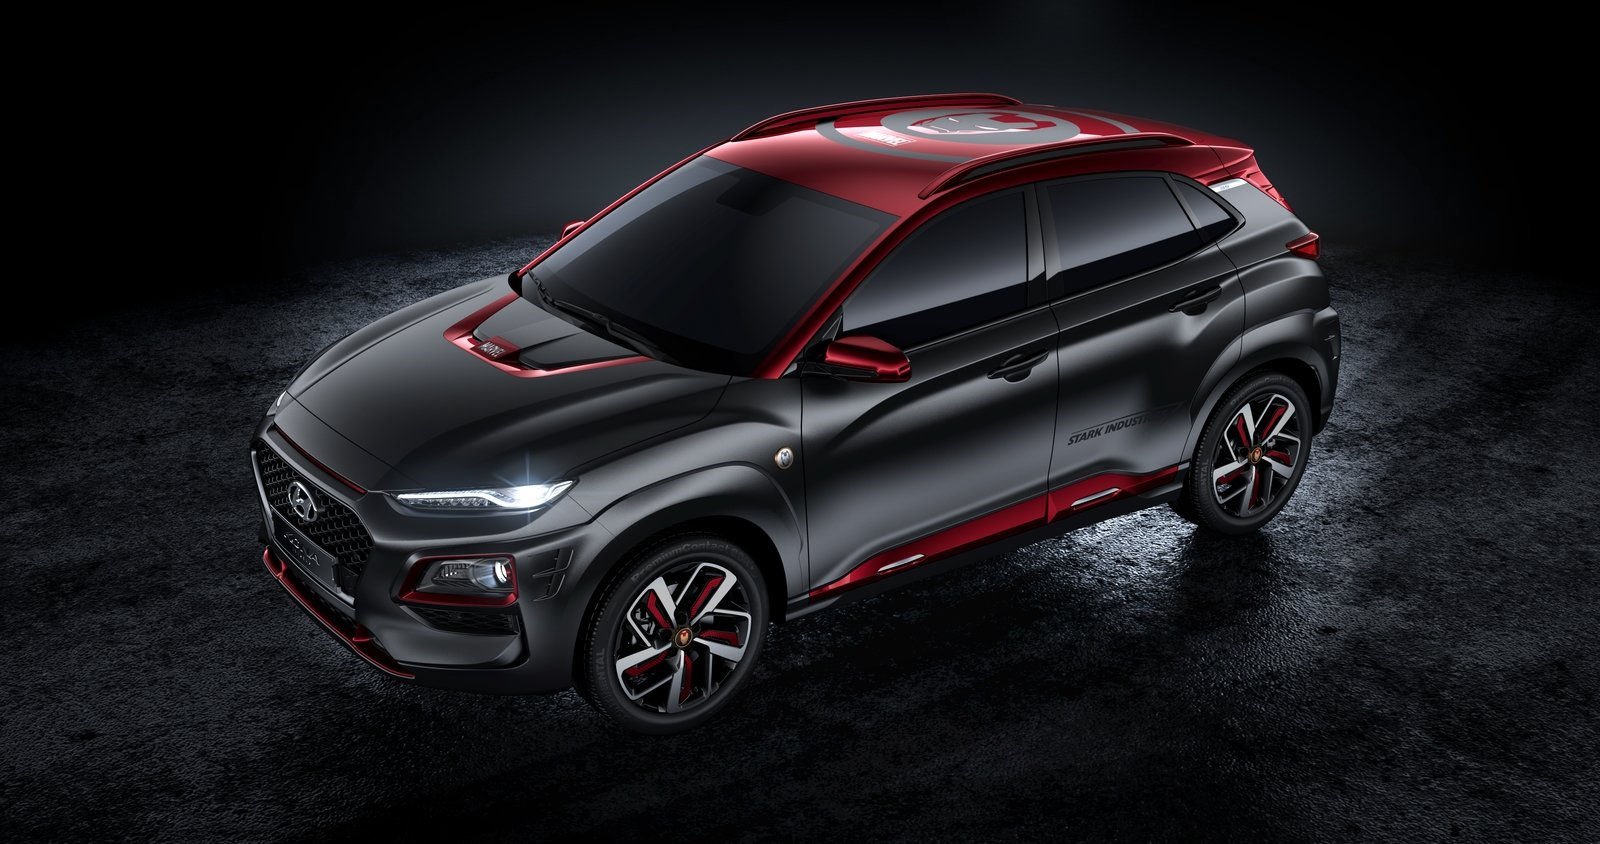 2019 Hyundai Kona Iron Man Edition | Top Speed